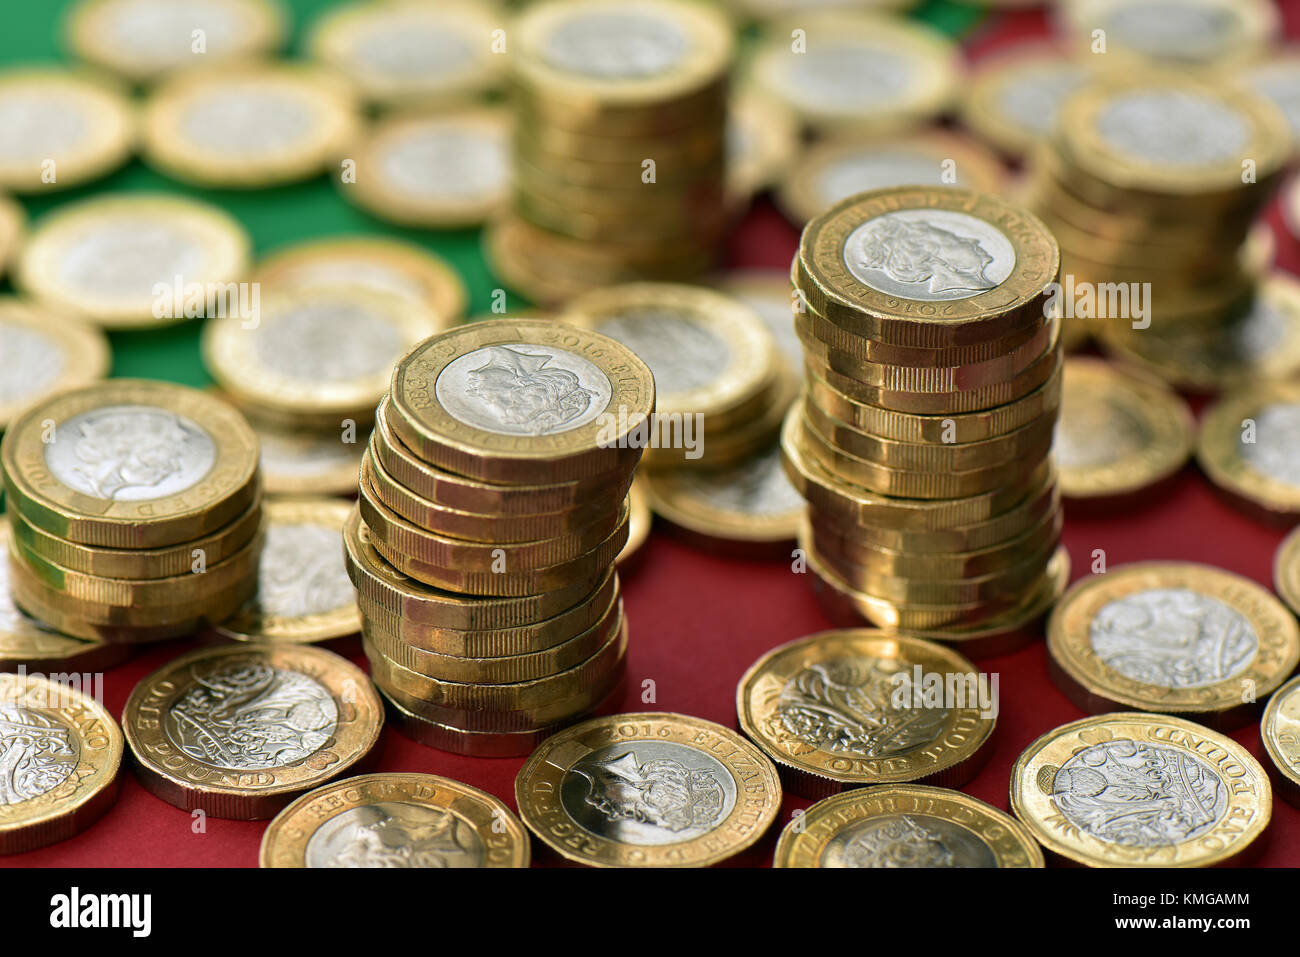 pound coins in large quantities on a red and green Christmassy themed background. Christmas spending and coins in Stock Photo